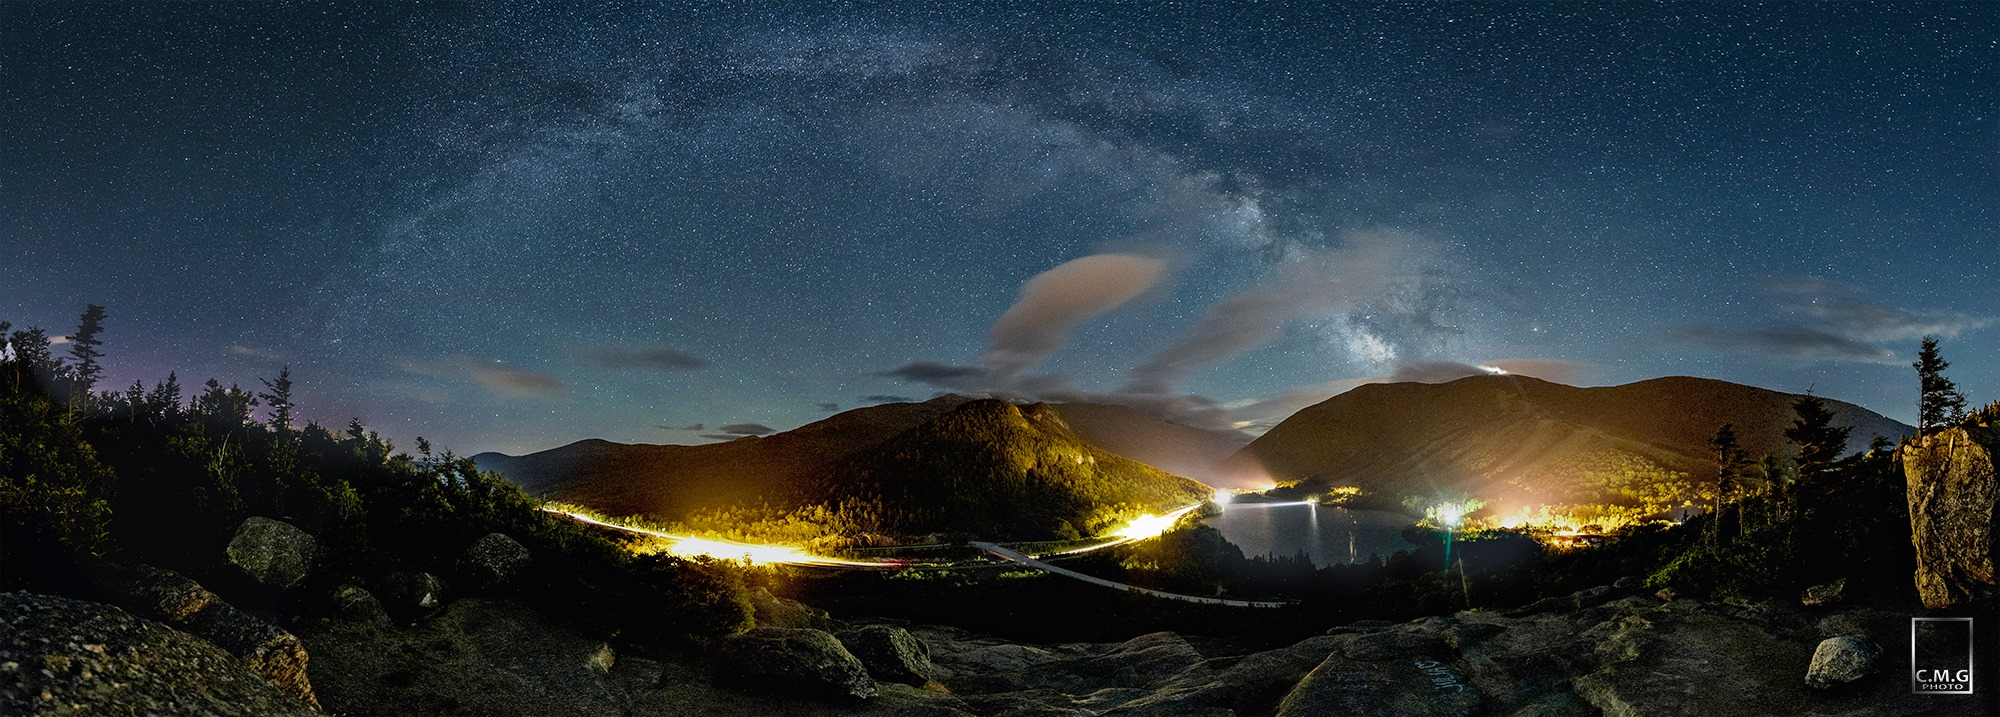 Magnificent Panorama Captures Milky Way Glowing Over White Mountains